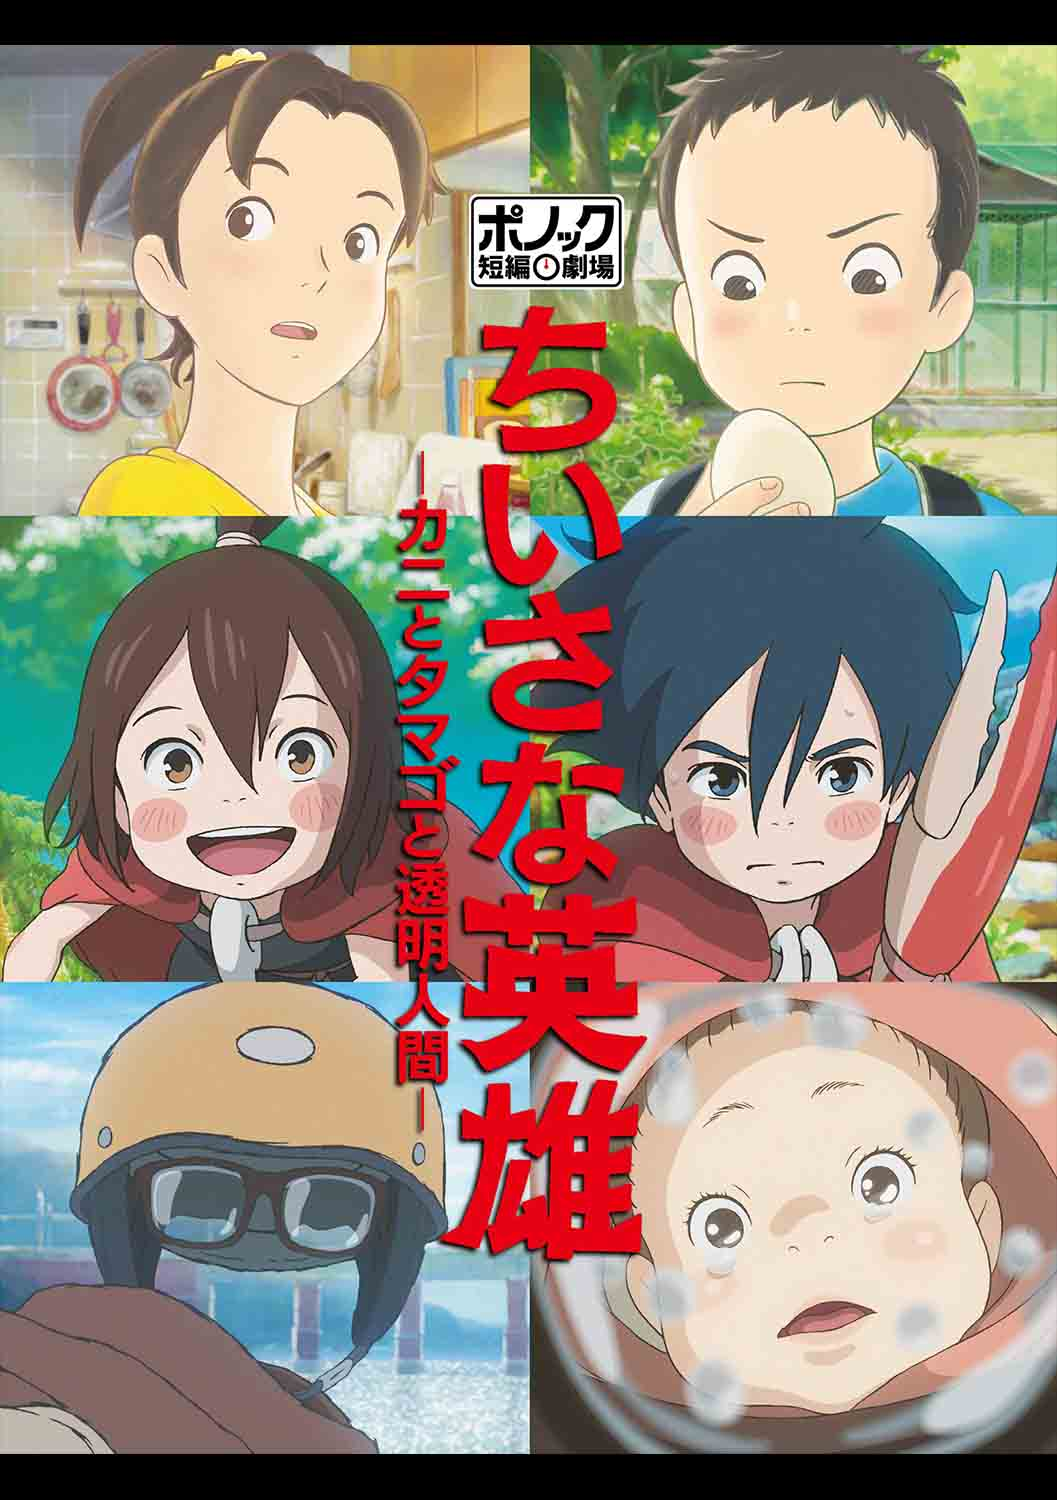 فيلم Modest Heroes Ponoc Short Films Theatre مترجم أون لاين